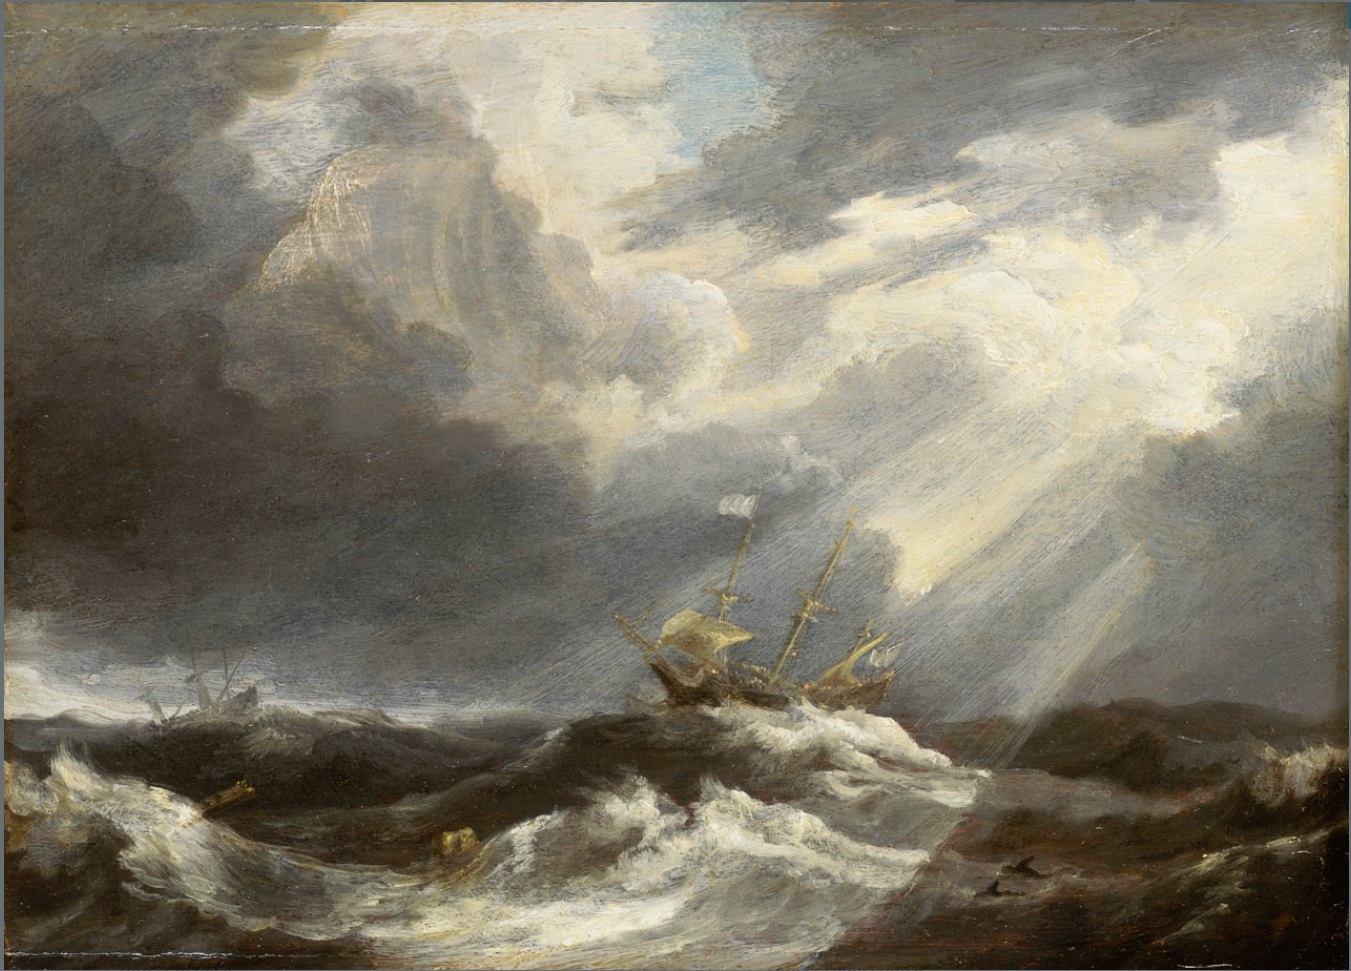 Newton on the Stormy Seas